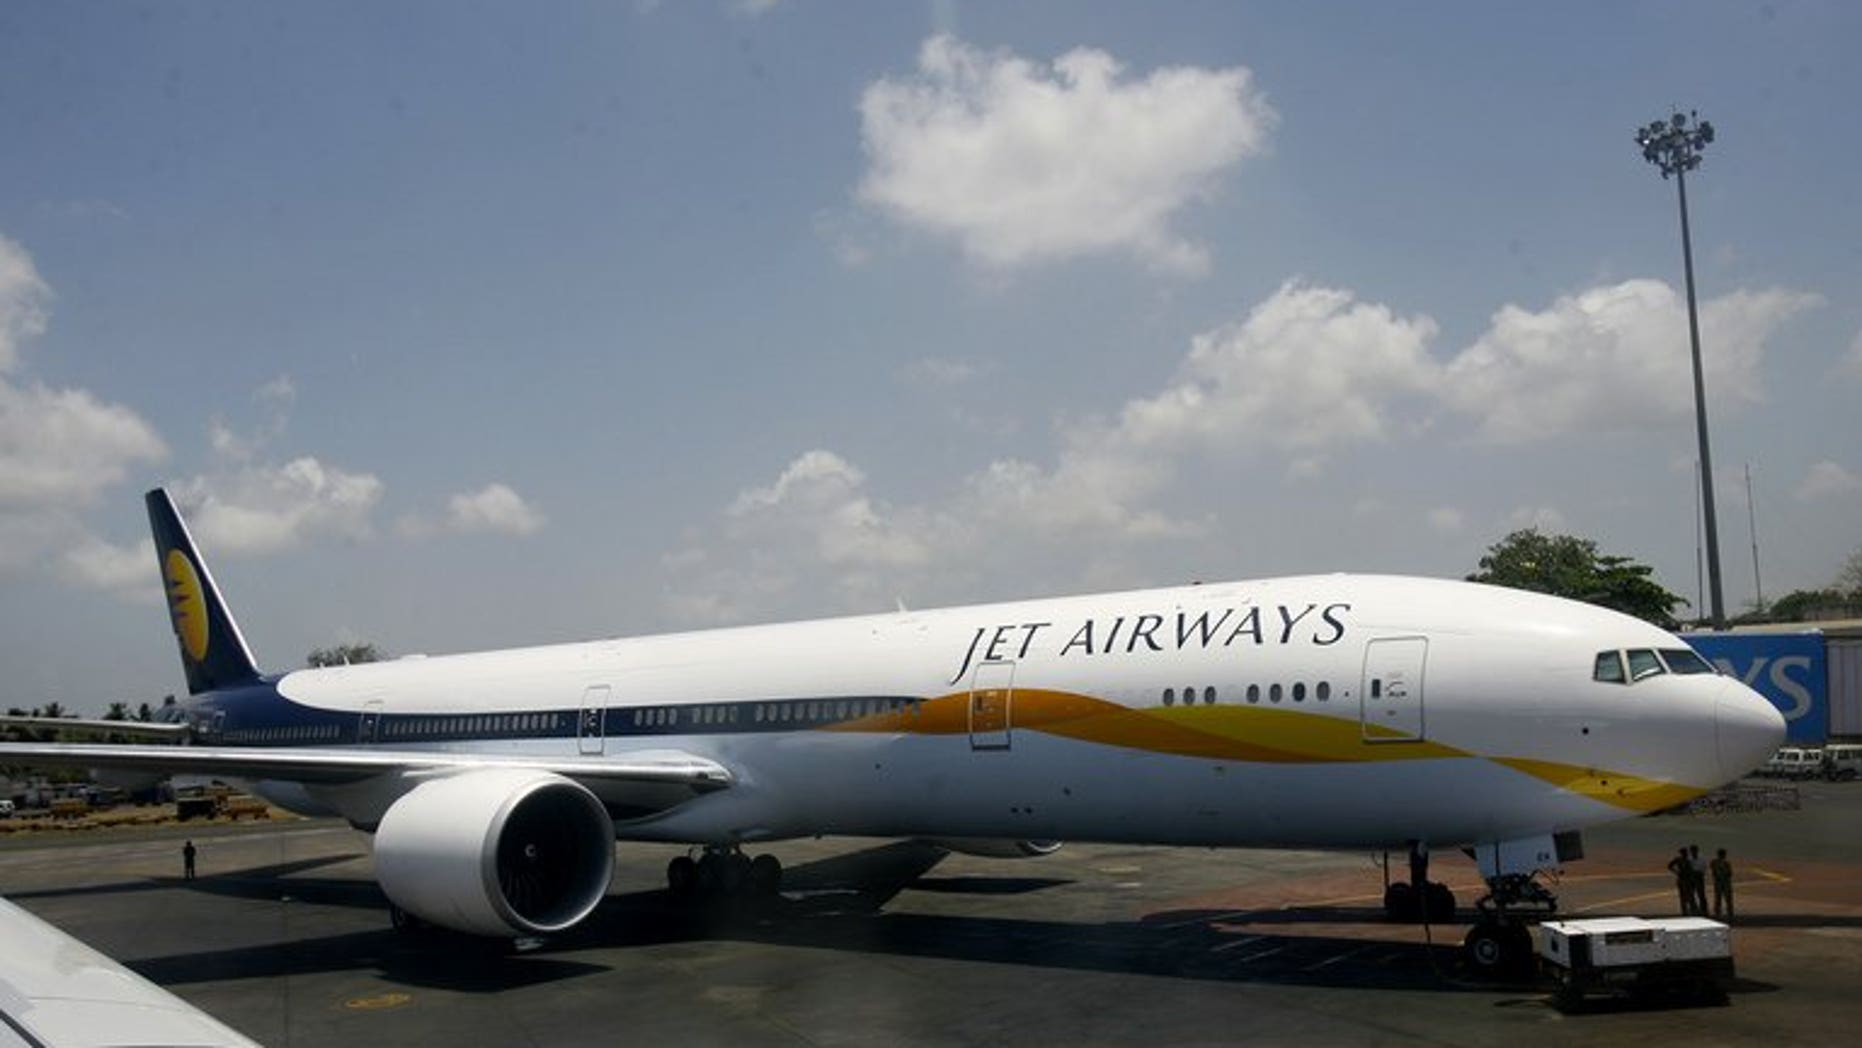 A Jet Airways Boeing 777-300ER stands on the tarmac at Chatrapati Shivaji International Airport in Mumbai on May 13, 2007. India's foreign investment panel approved a plan for Abu Dhabi-based Etihad to buy a stake in Indian airline Jet, but the pact still faces other hurdles.